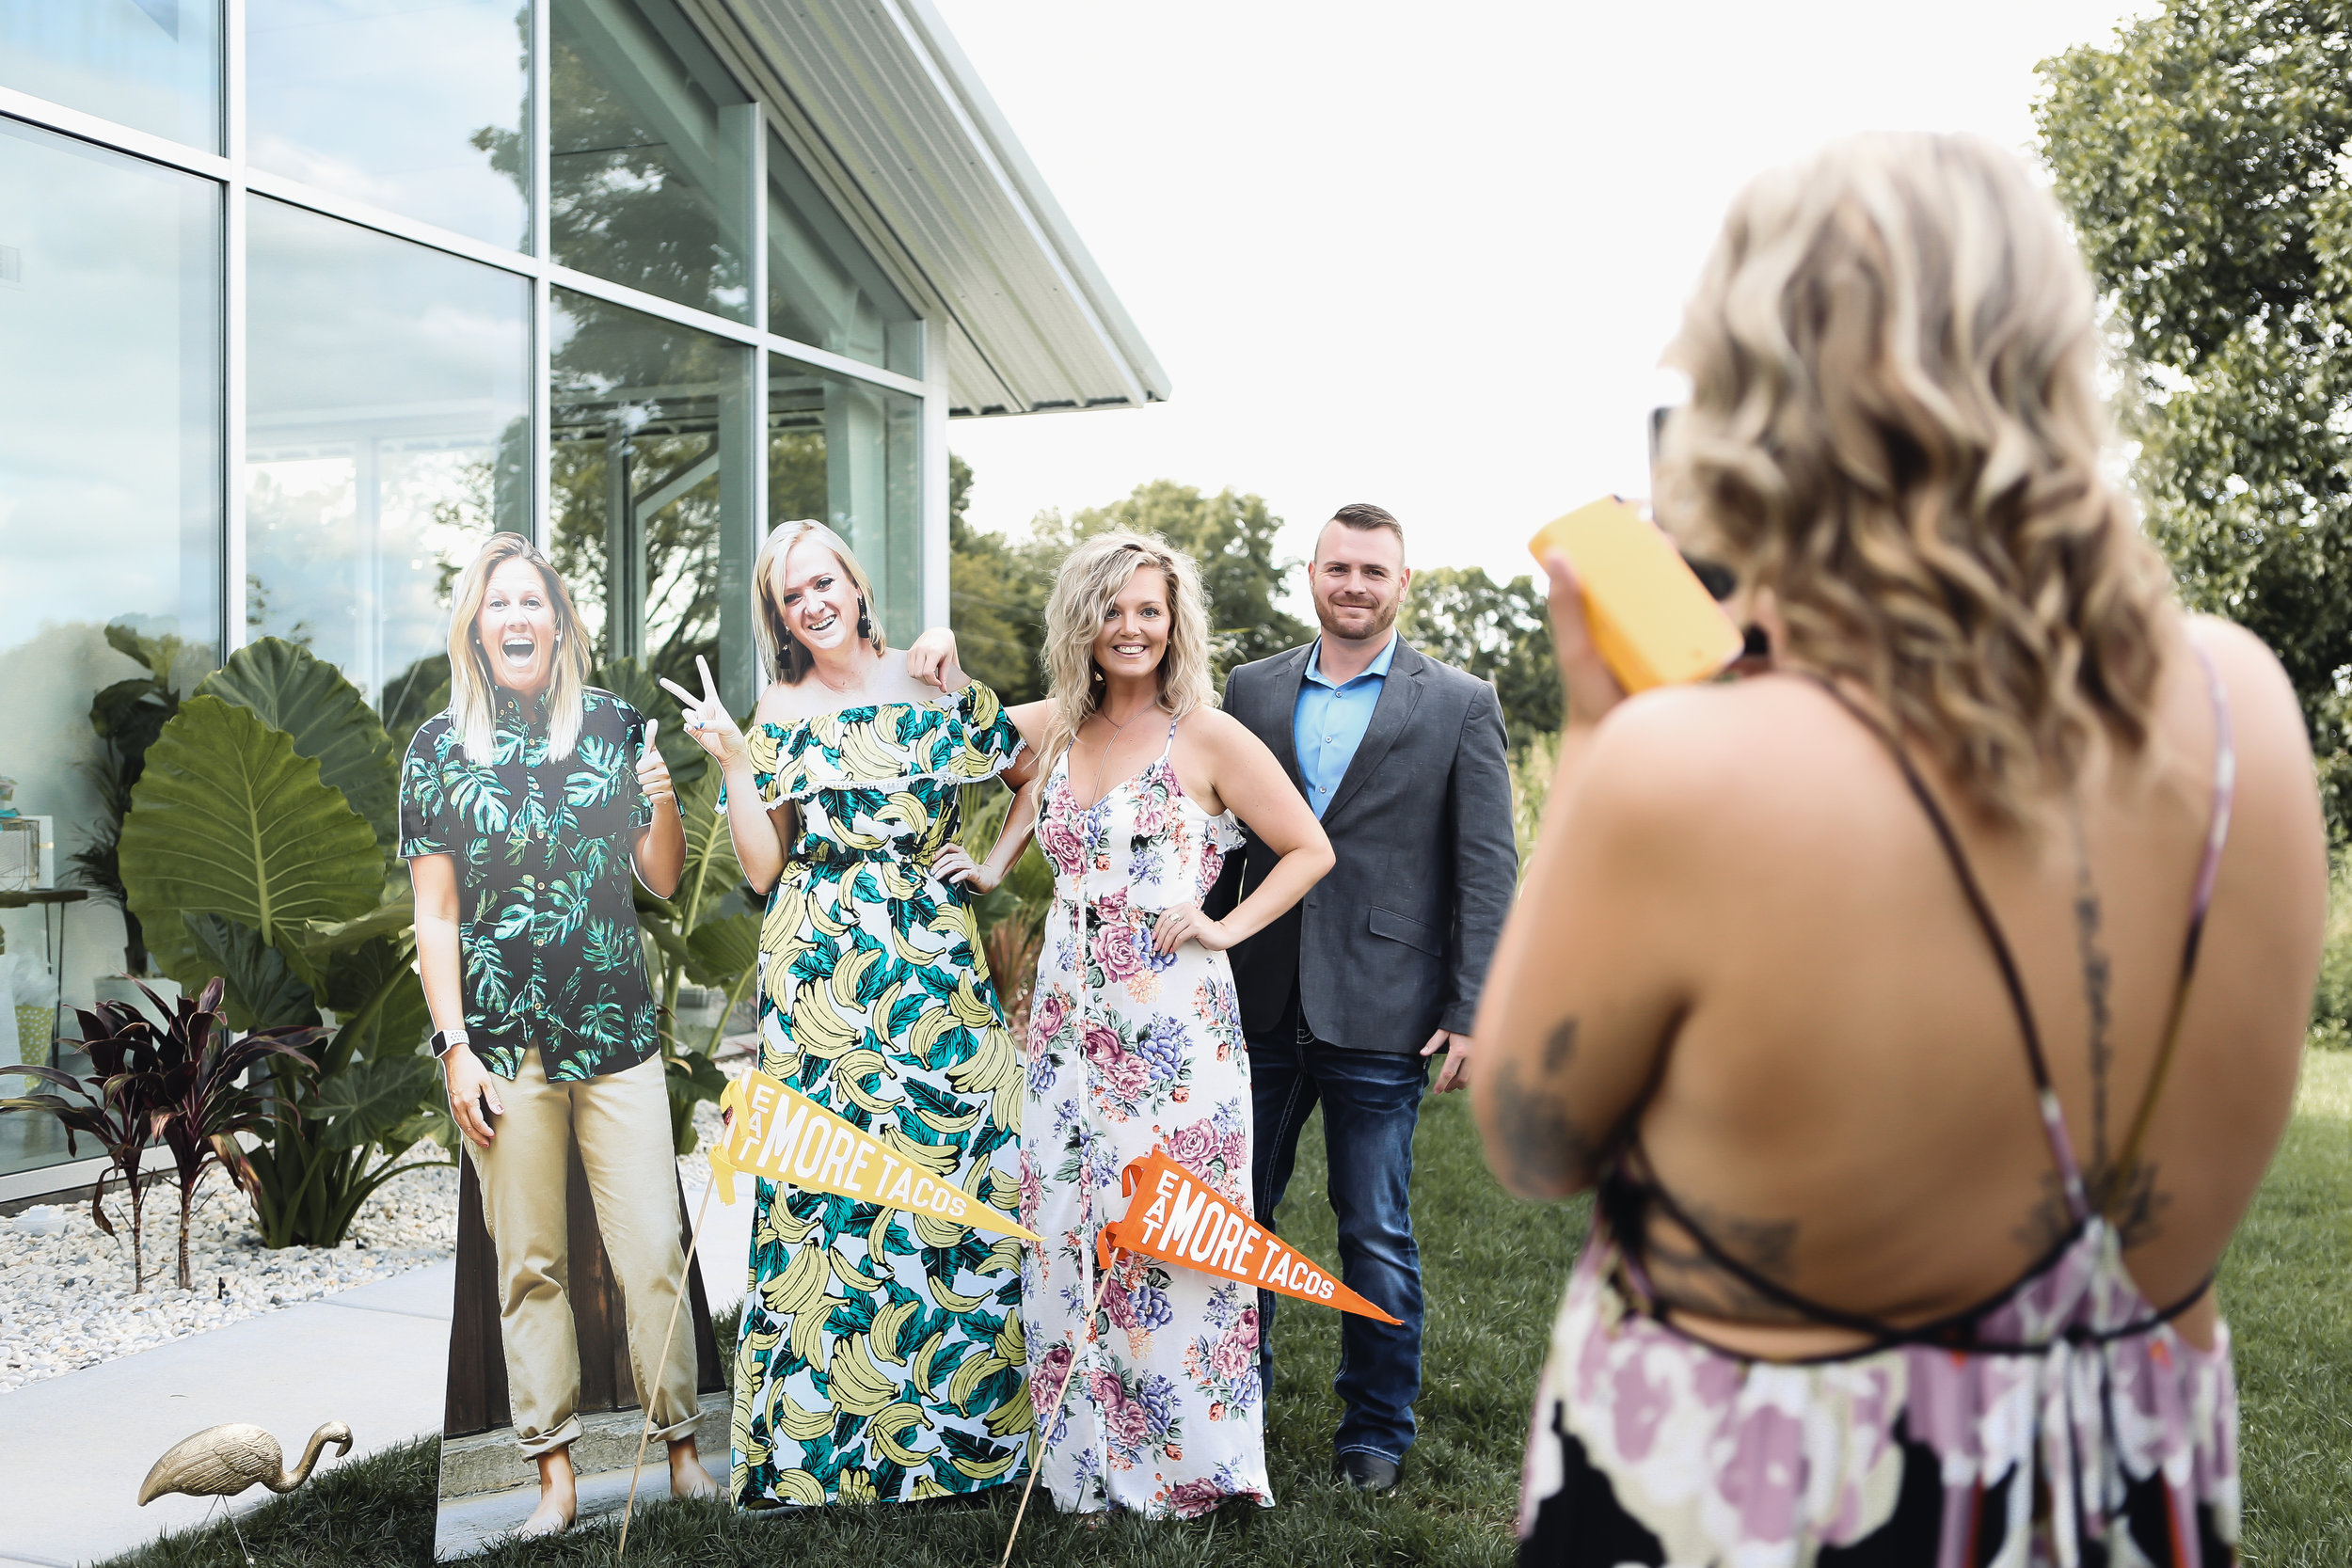 Natalee and Felicia's guests have fun taking photos of their cut outs since their wedding planner took care of all the details.